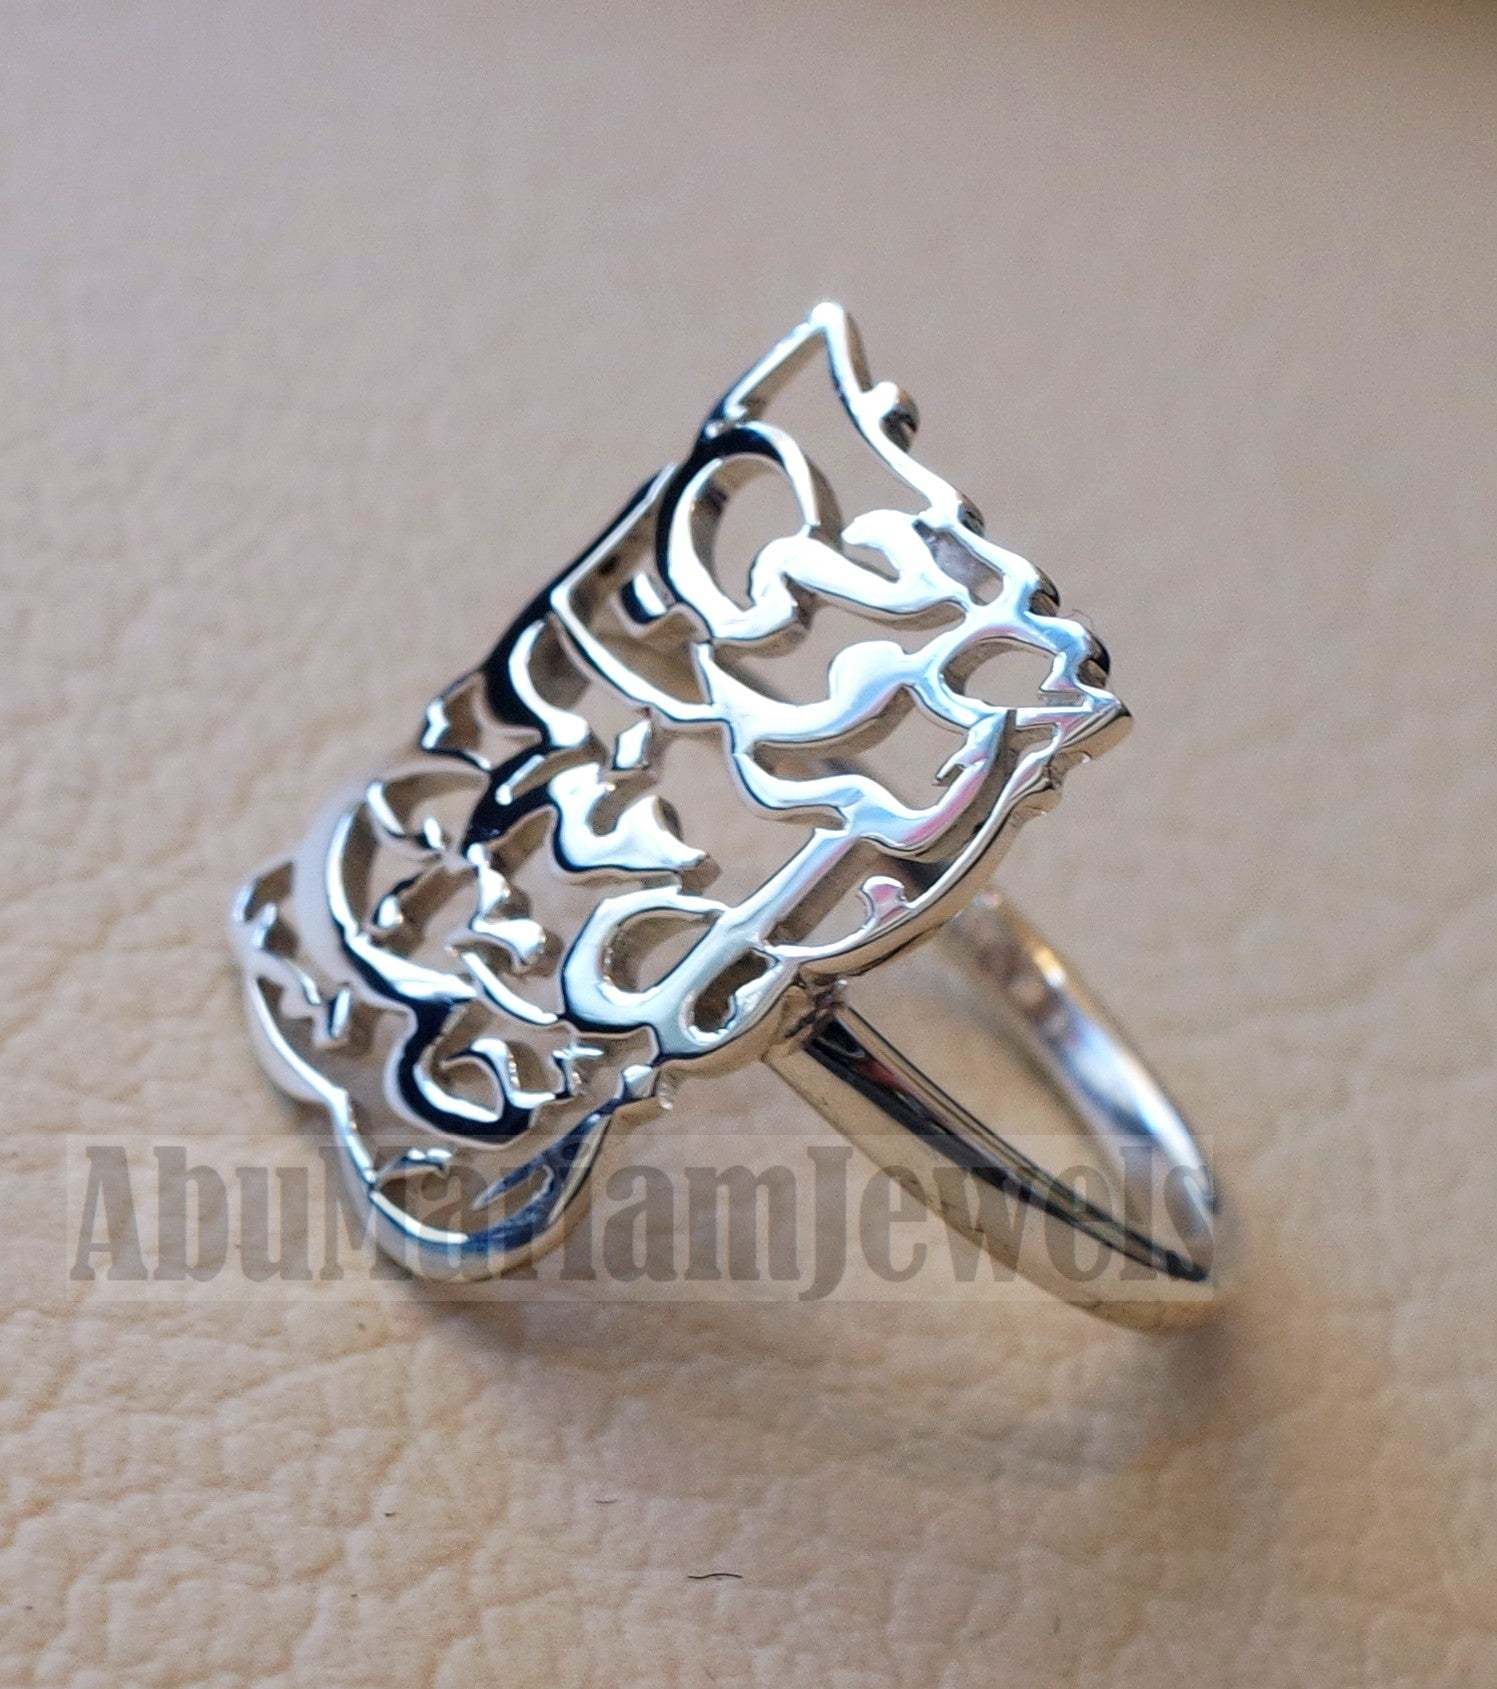 Arabic calligraphy customized 2 - 4 names / phrase sterling silver 925 or 18 k yellow gold ring , fit all sizes any name خاتم اسماء عربي RE1007